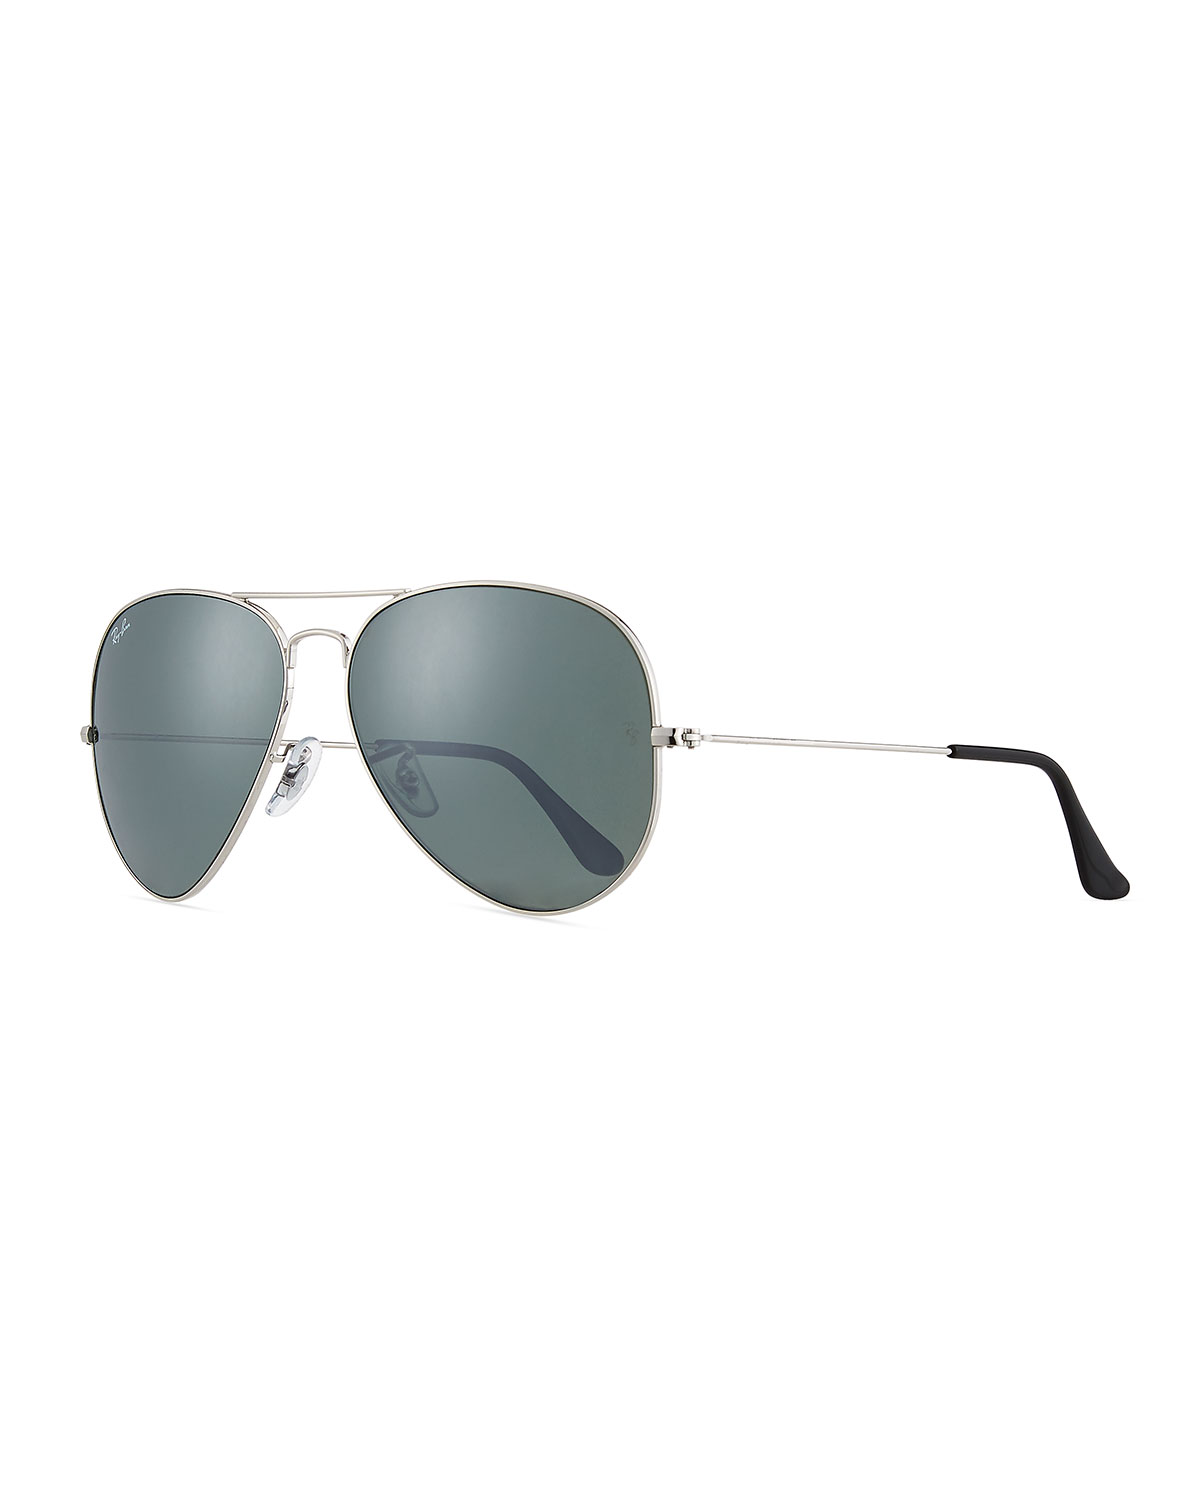 7aa337dfc7f9 Quick Look. Ray-Ban · Cry Mirrored Aviator Sunglasses